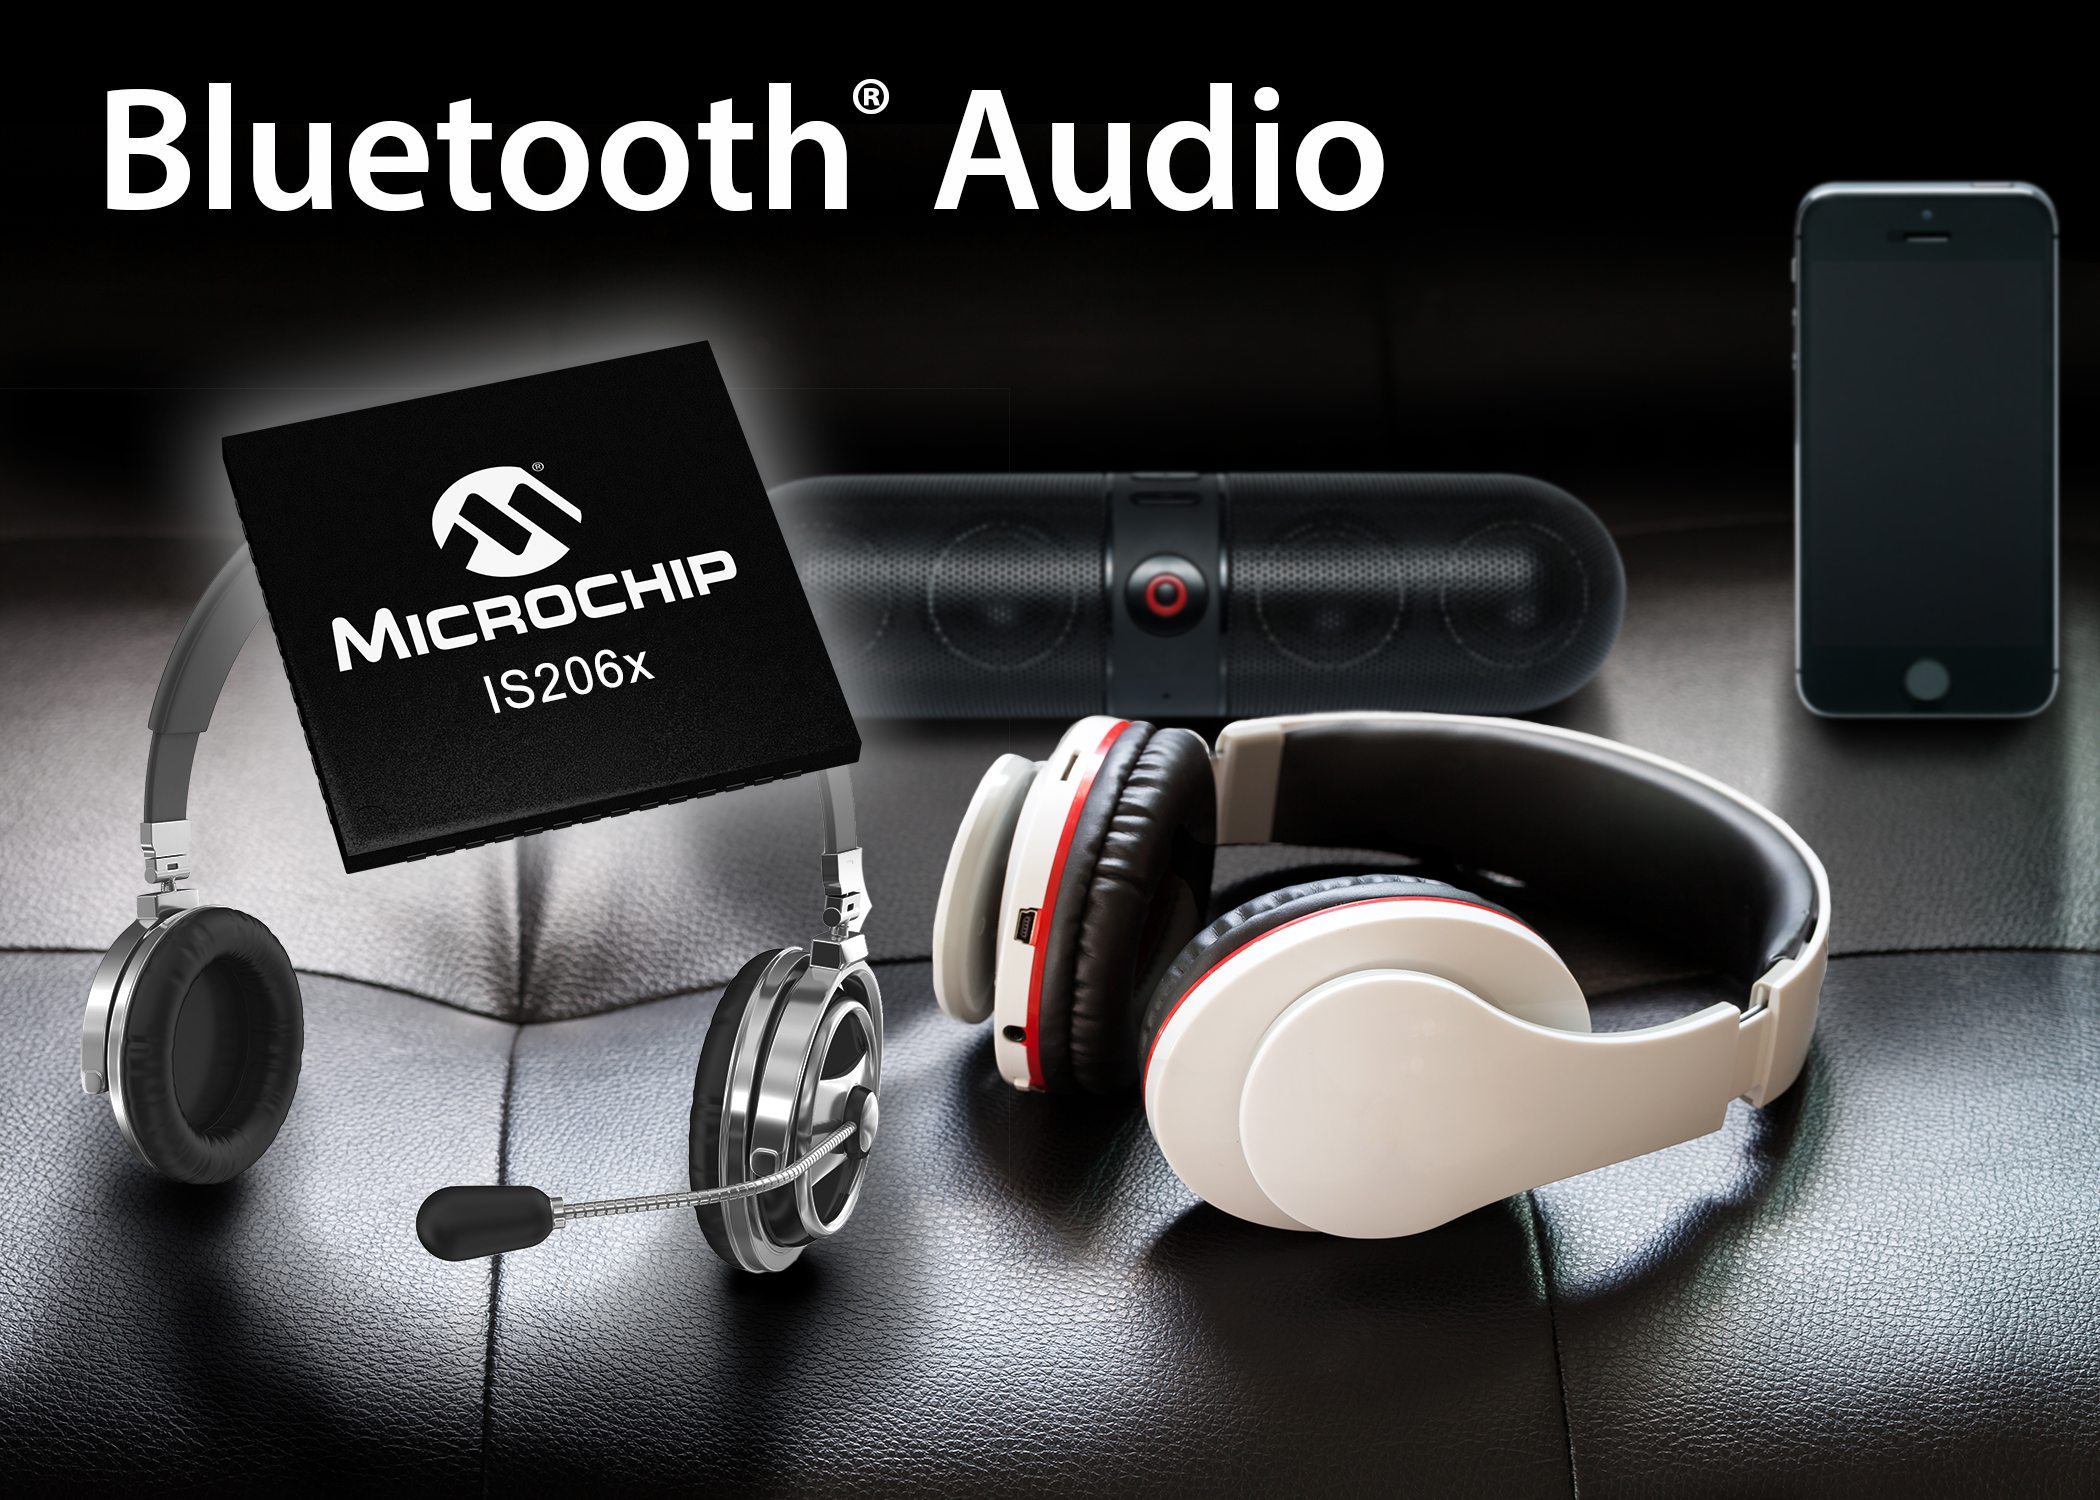 next-generation-dual-mode-bluetooth-audio-products-from-microchip_27970082110_o